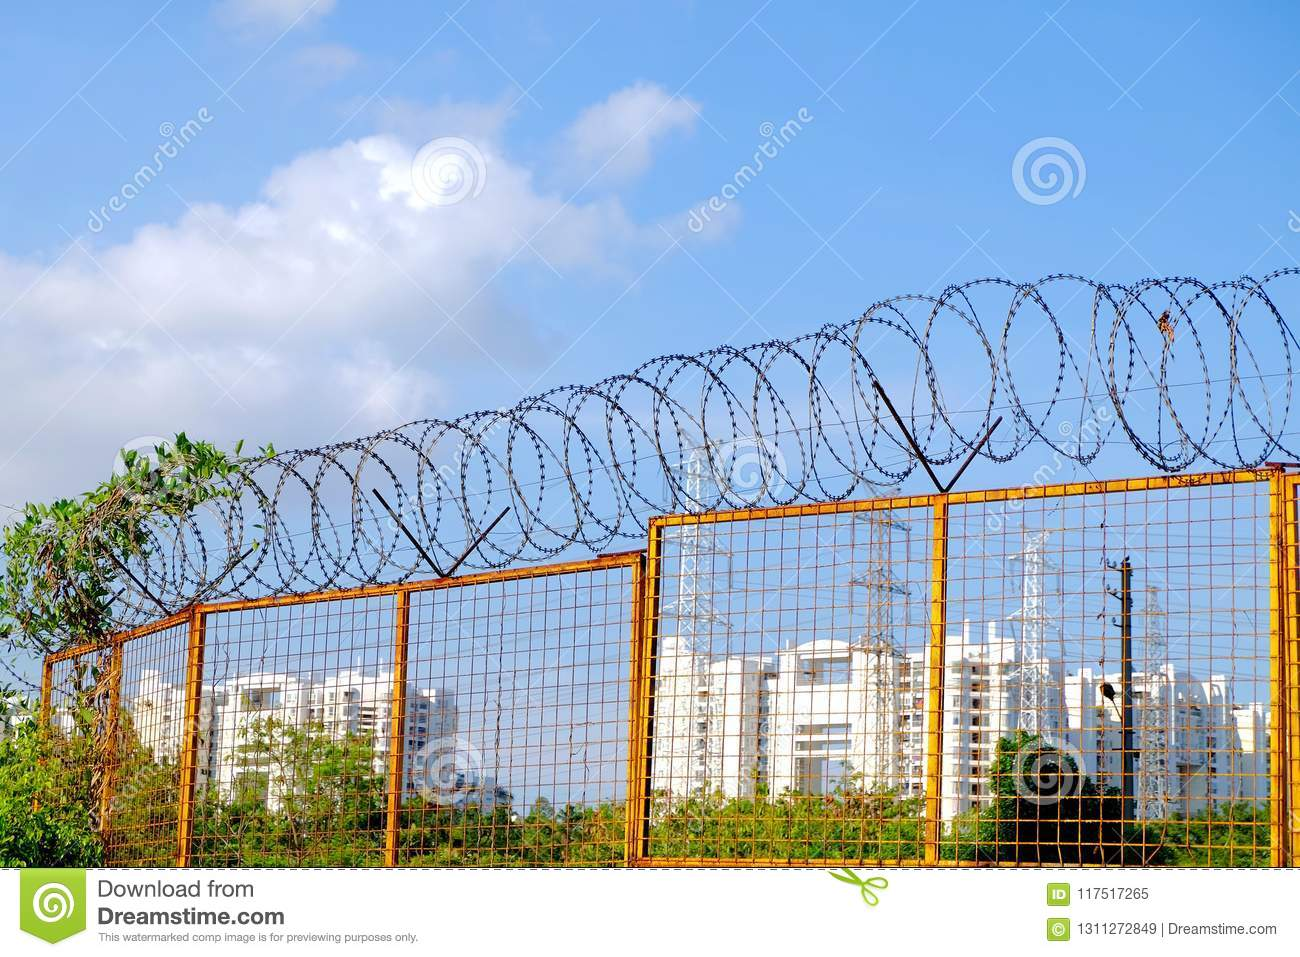 Barbed wire fence stock image. Image of column, line - 117517265